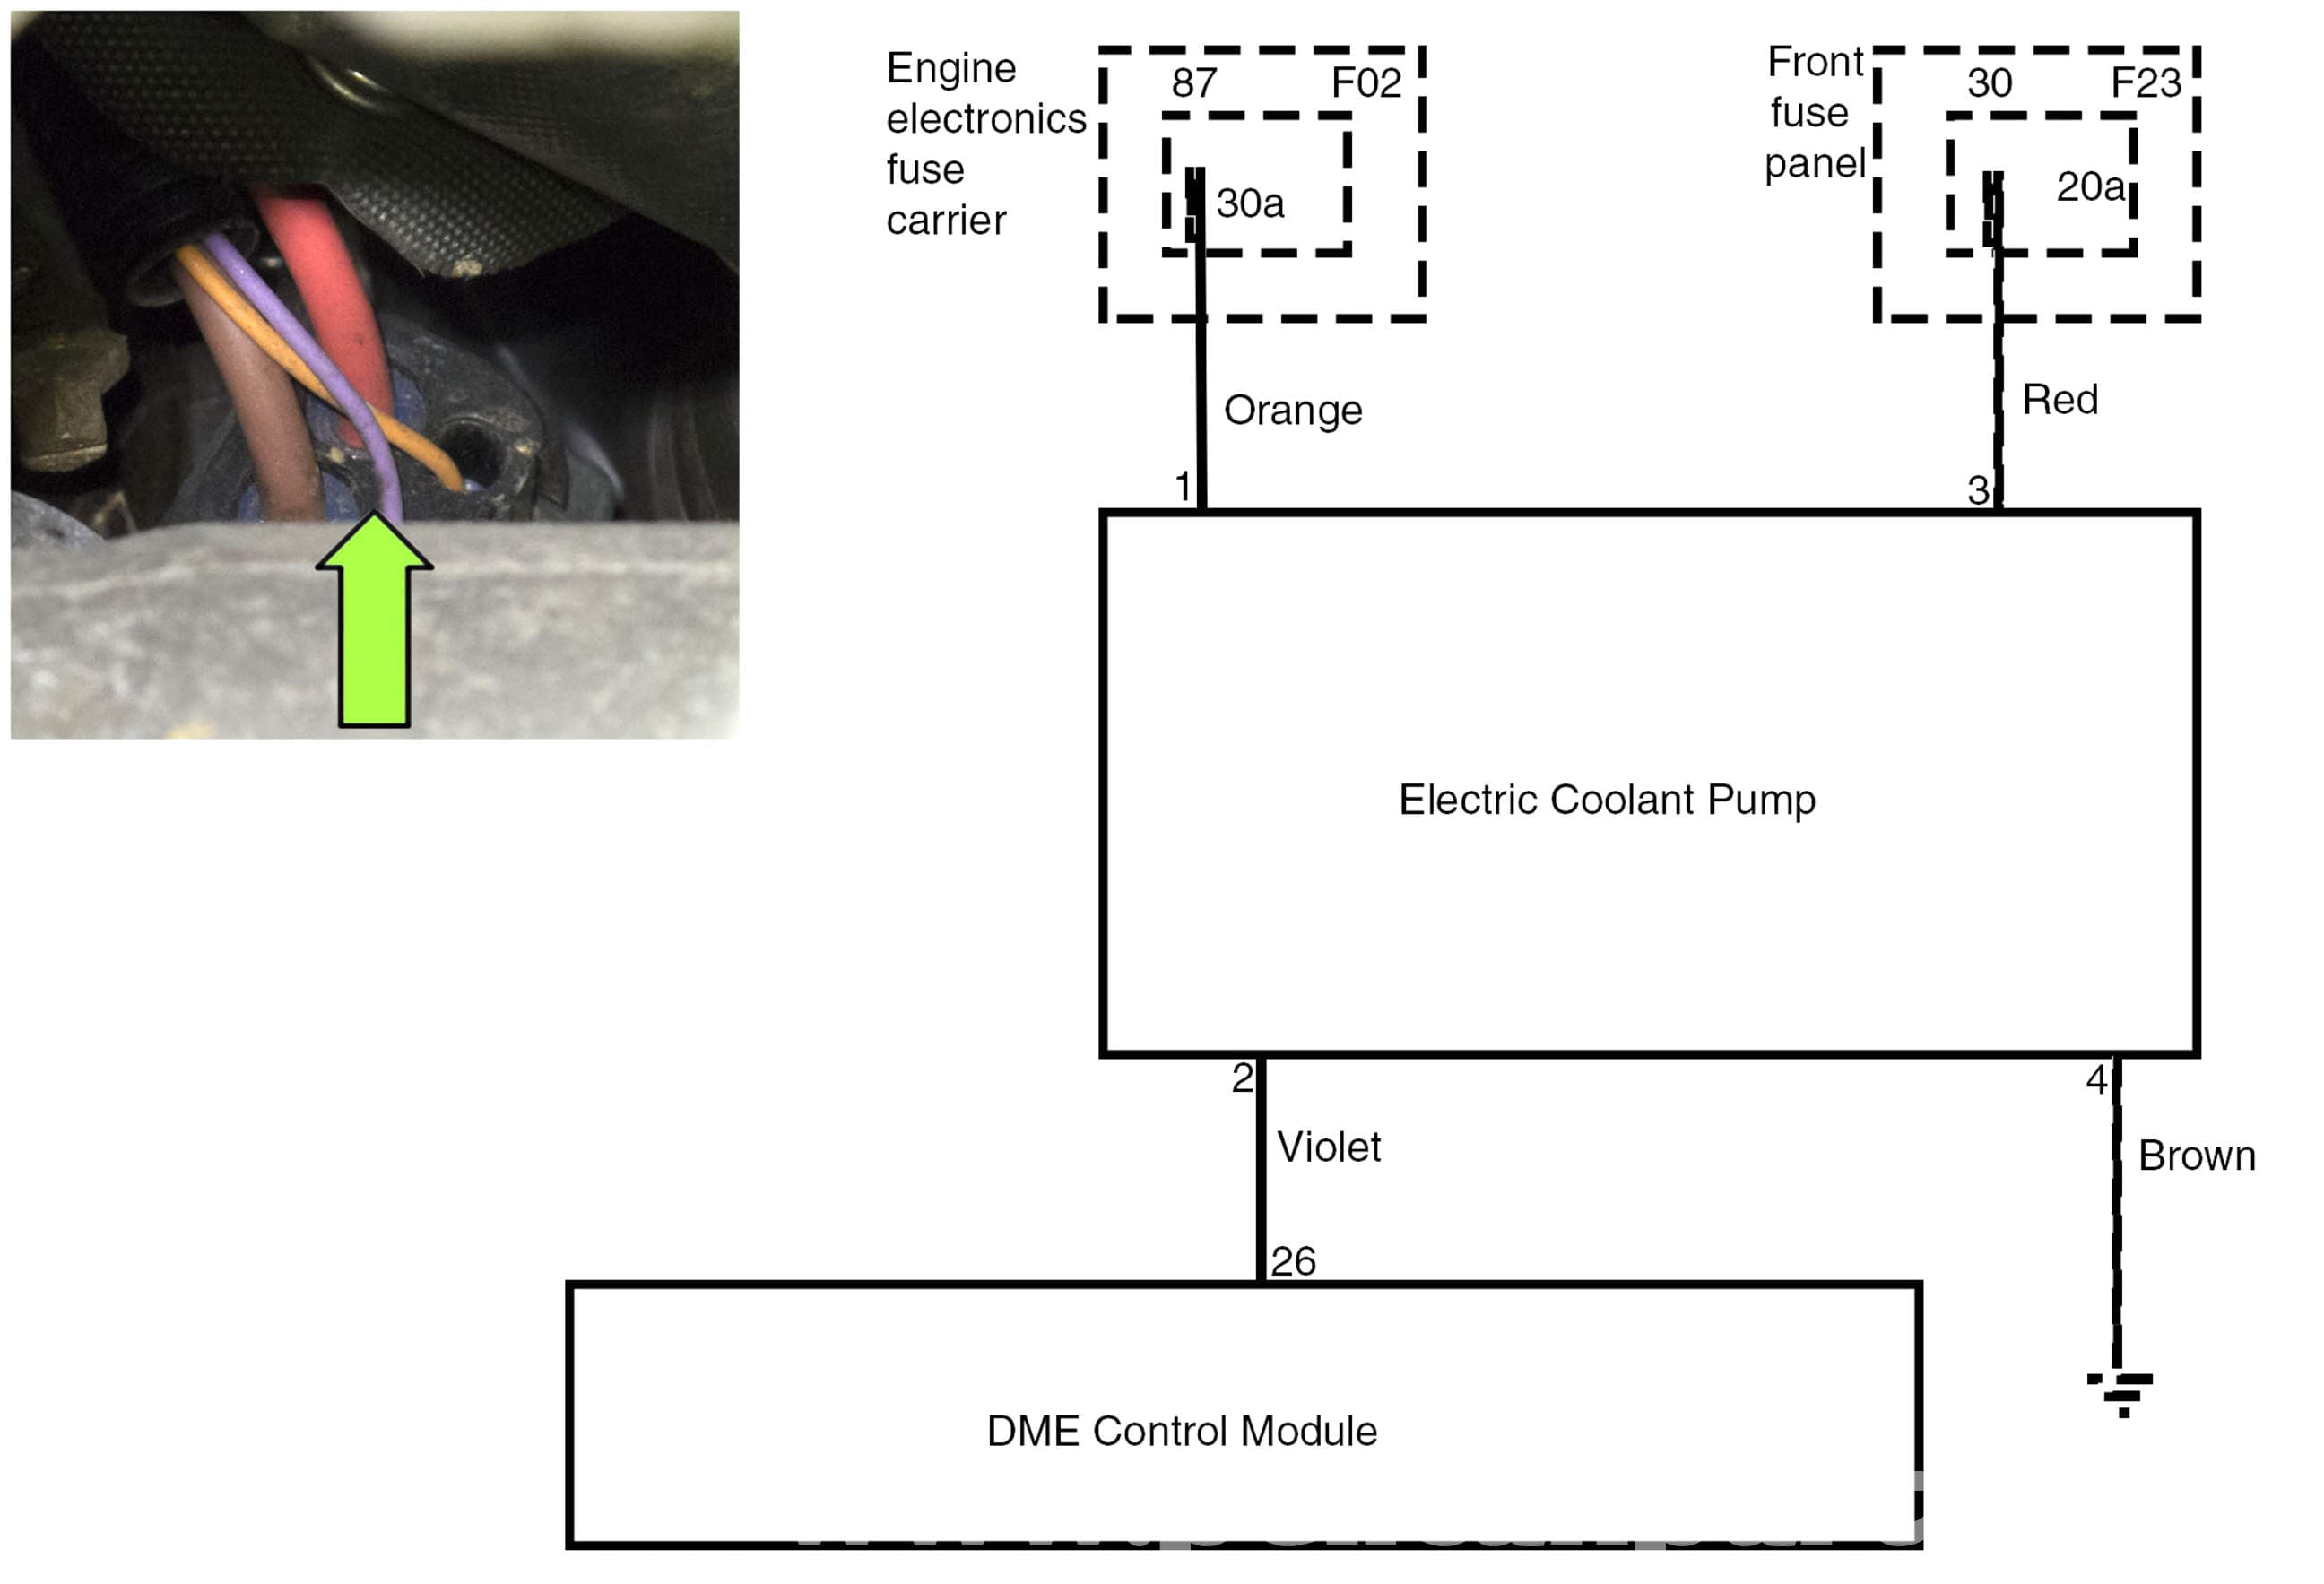 11 Ecm Wiring Diagram Free Image Engine Schematic Bmw E60 5 Series Water Pump Testing Pelican Parts Technical Article Large Extra